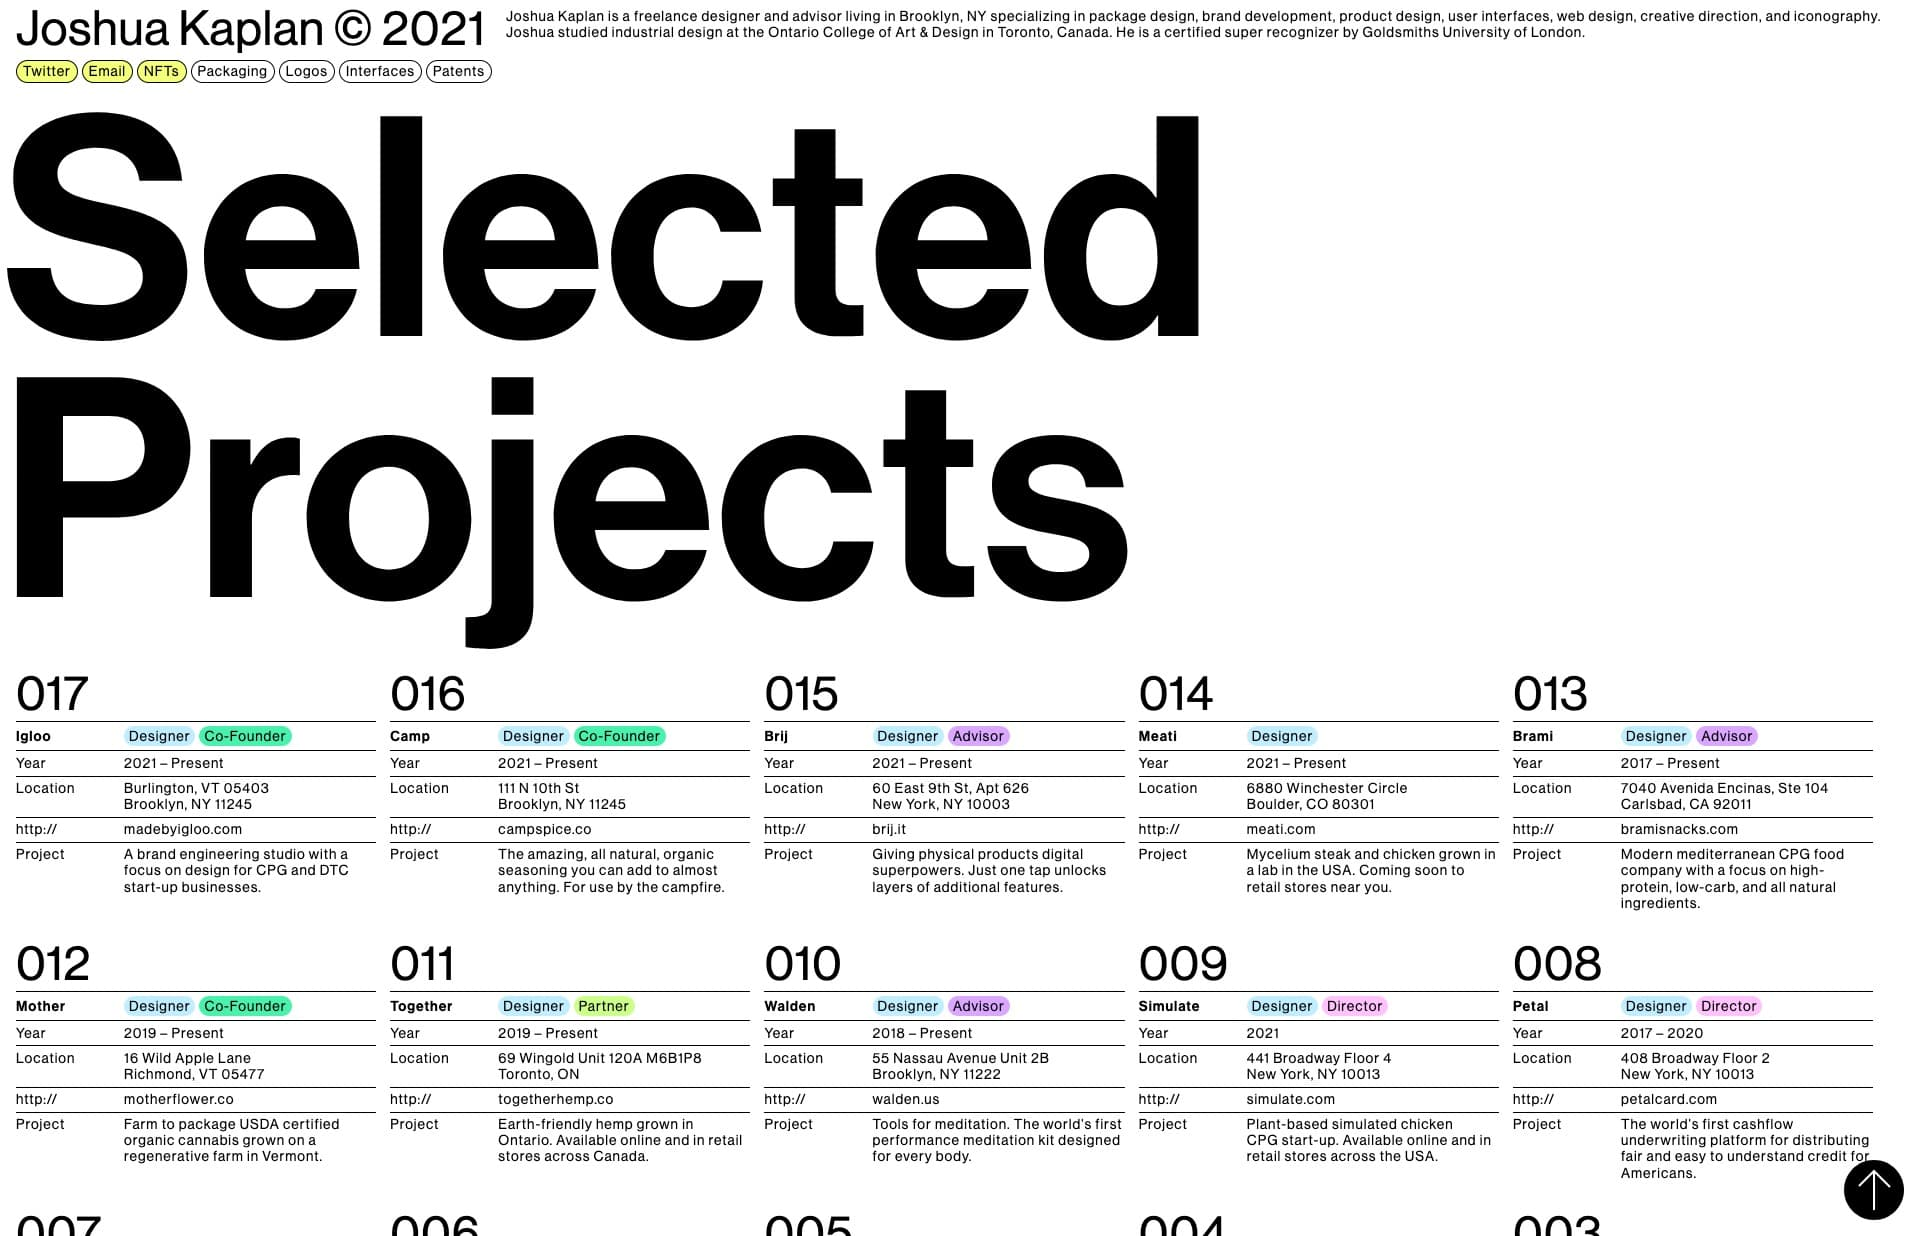 Screenshot of the website Joshua Kaplan, featured on The Gallery, a curated collection of minimal websites